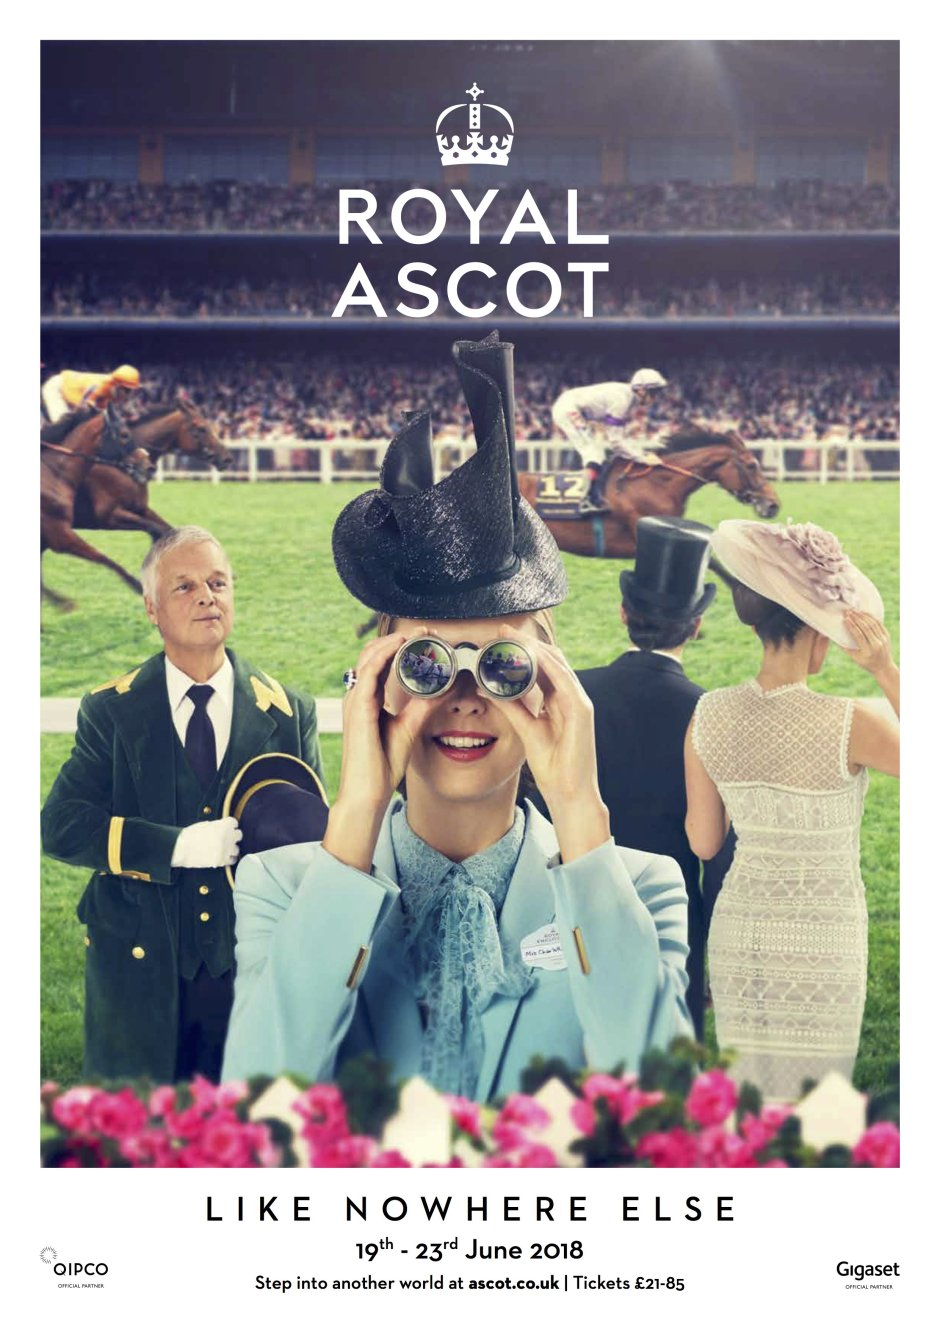 royal-ascot-an-occasion-like-nowhere-else-4-2000-70383